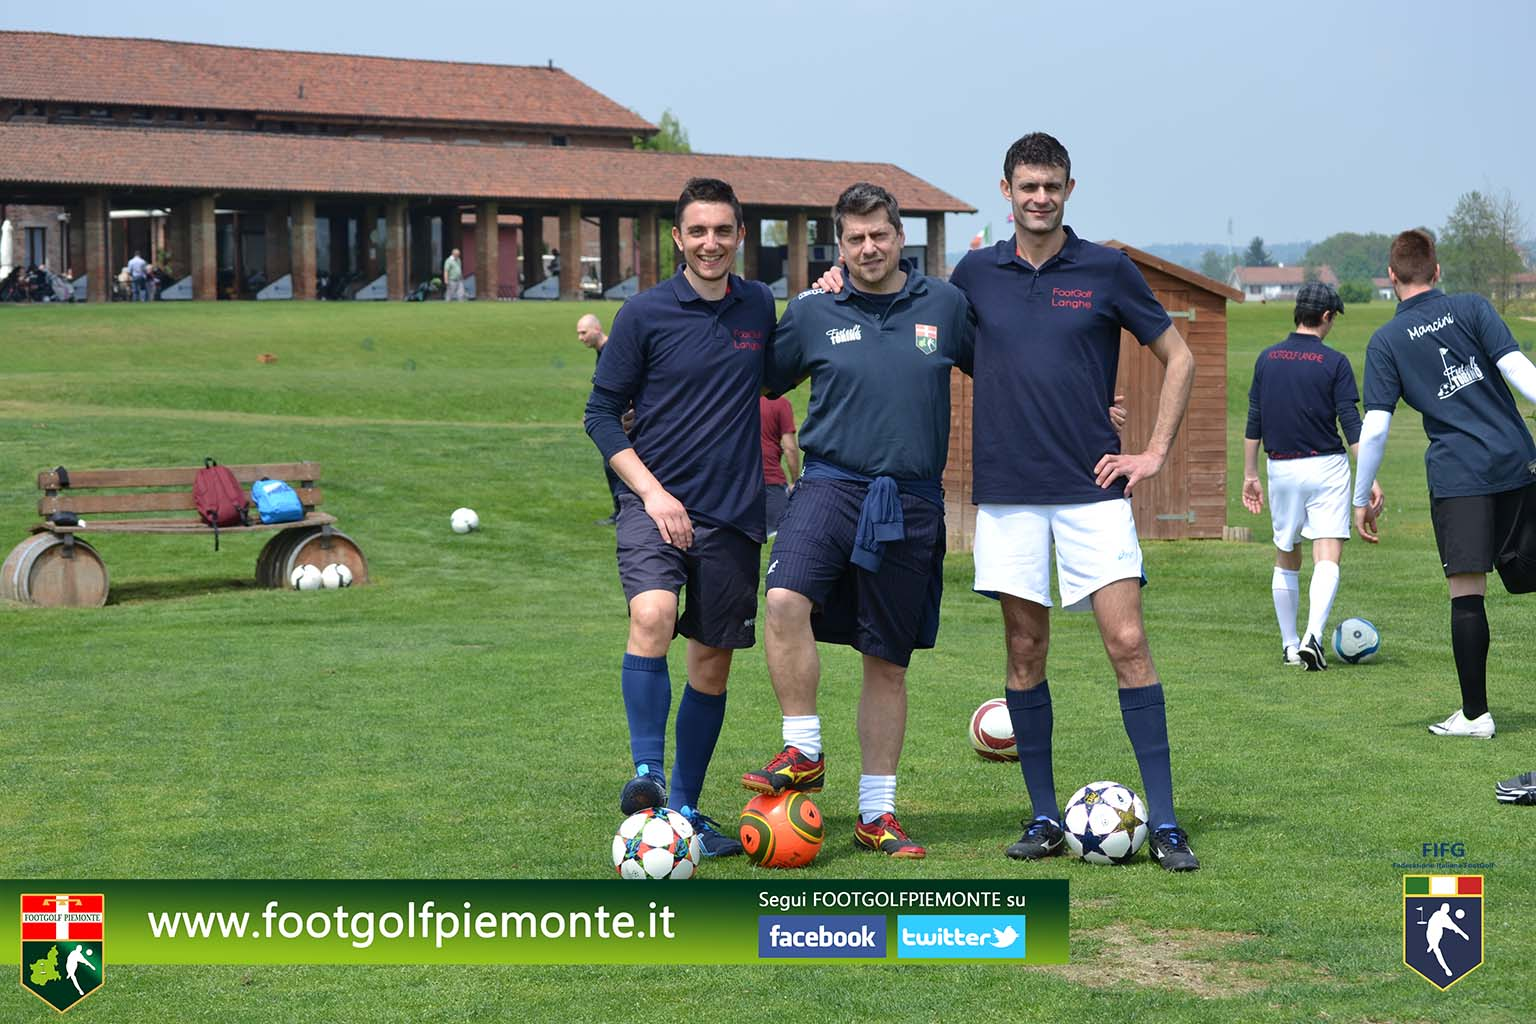 FOTO 9 Regions' Cup Footgolf Piemonte 2016 Golf Città di Asti (At) 30apr16-57